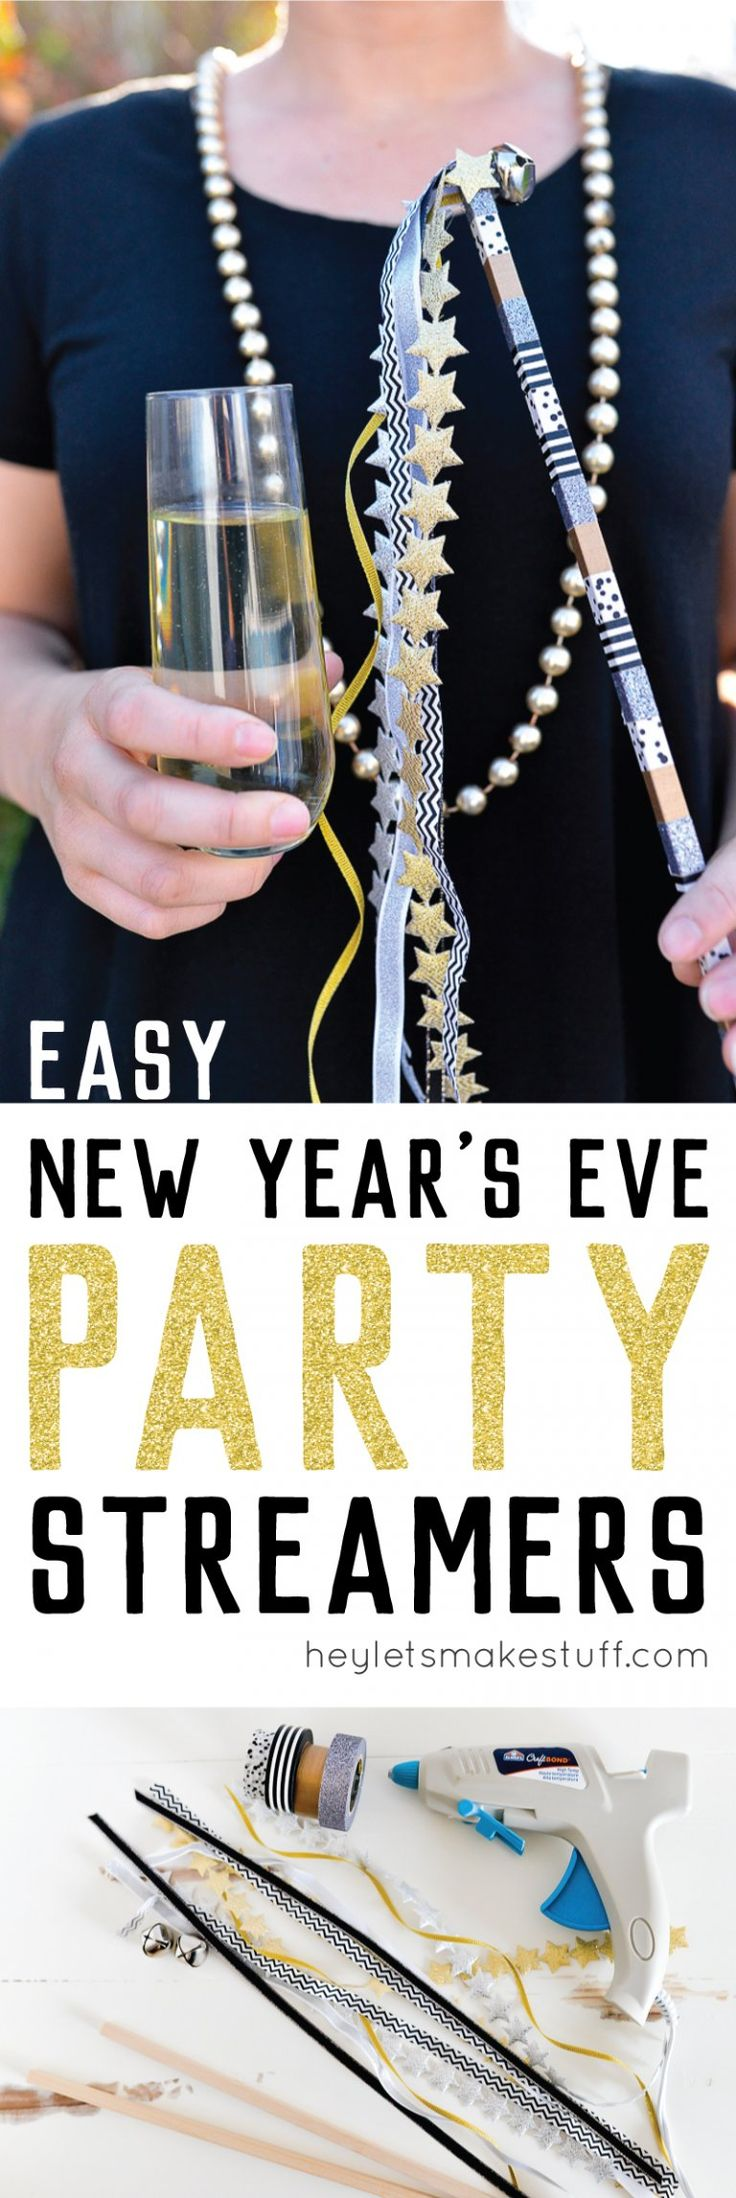 If you're throwing a New Year's Eve party, make these fun streamers to wave at midnight! I added a little bell to help you ring in the new year in style. AD